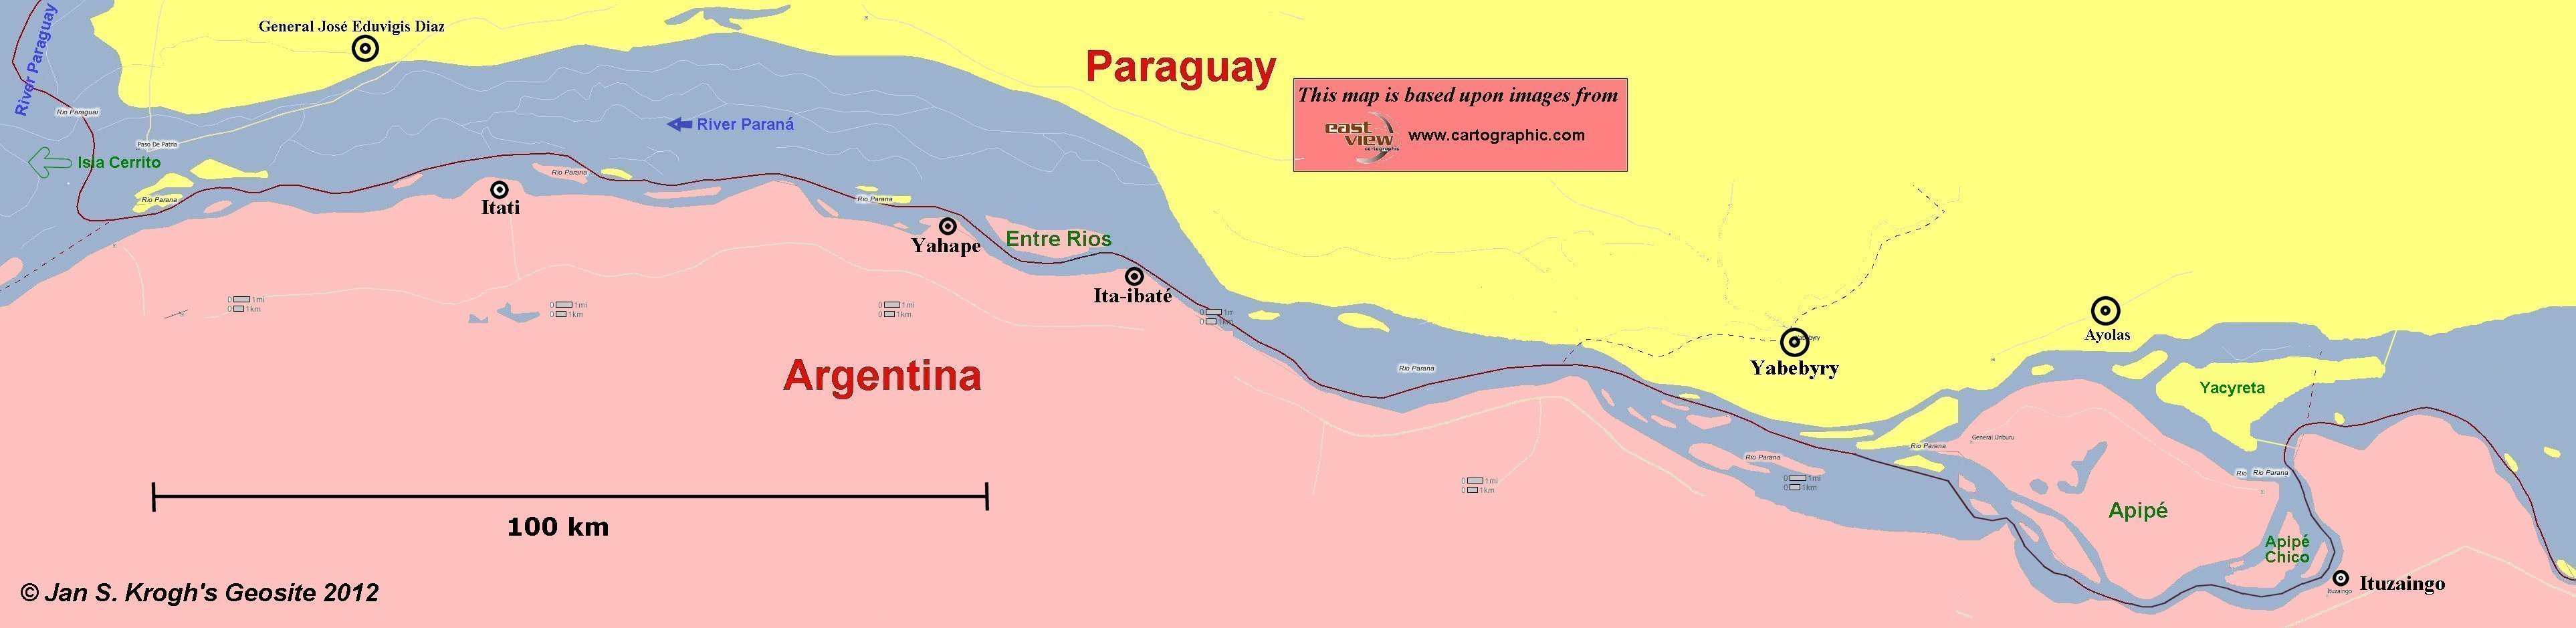 Jan S Kroghs Geosite Apipe Islands And Entre Rios Island - Parana river map